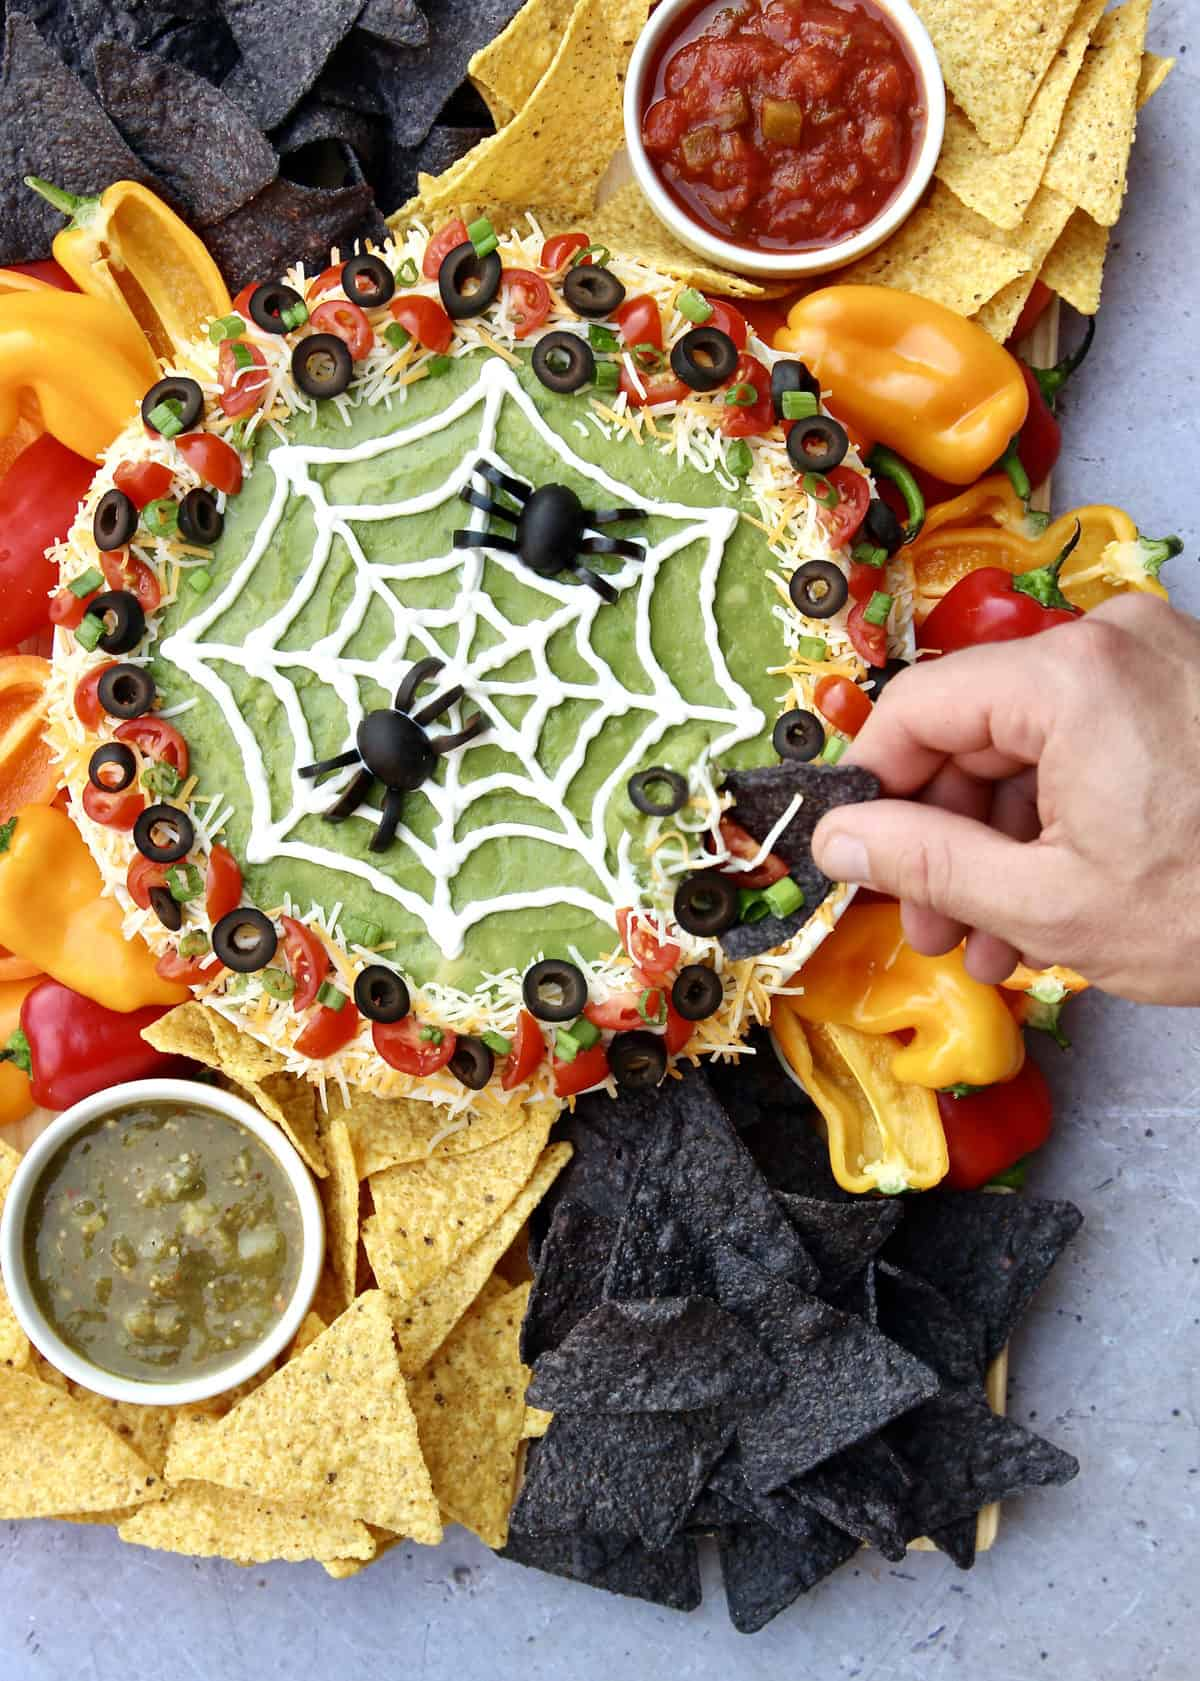 Spiderweb Seven Layer Dip by The BakerMama